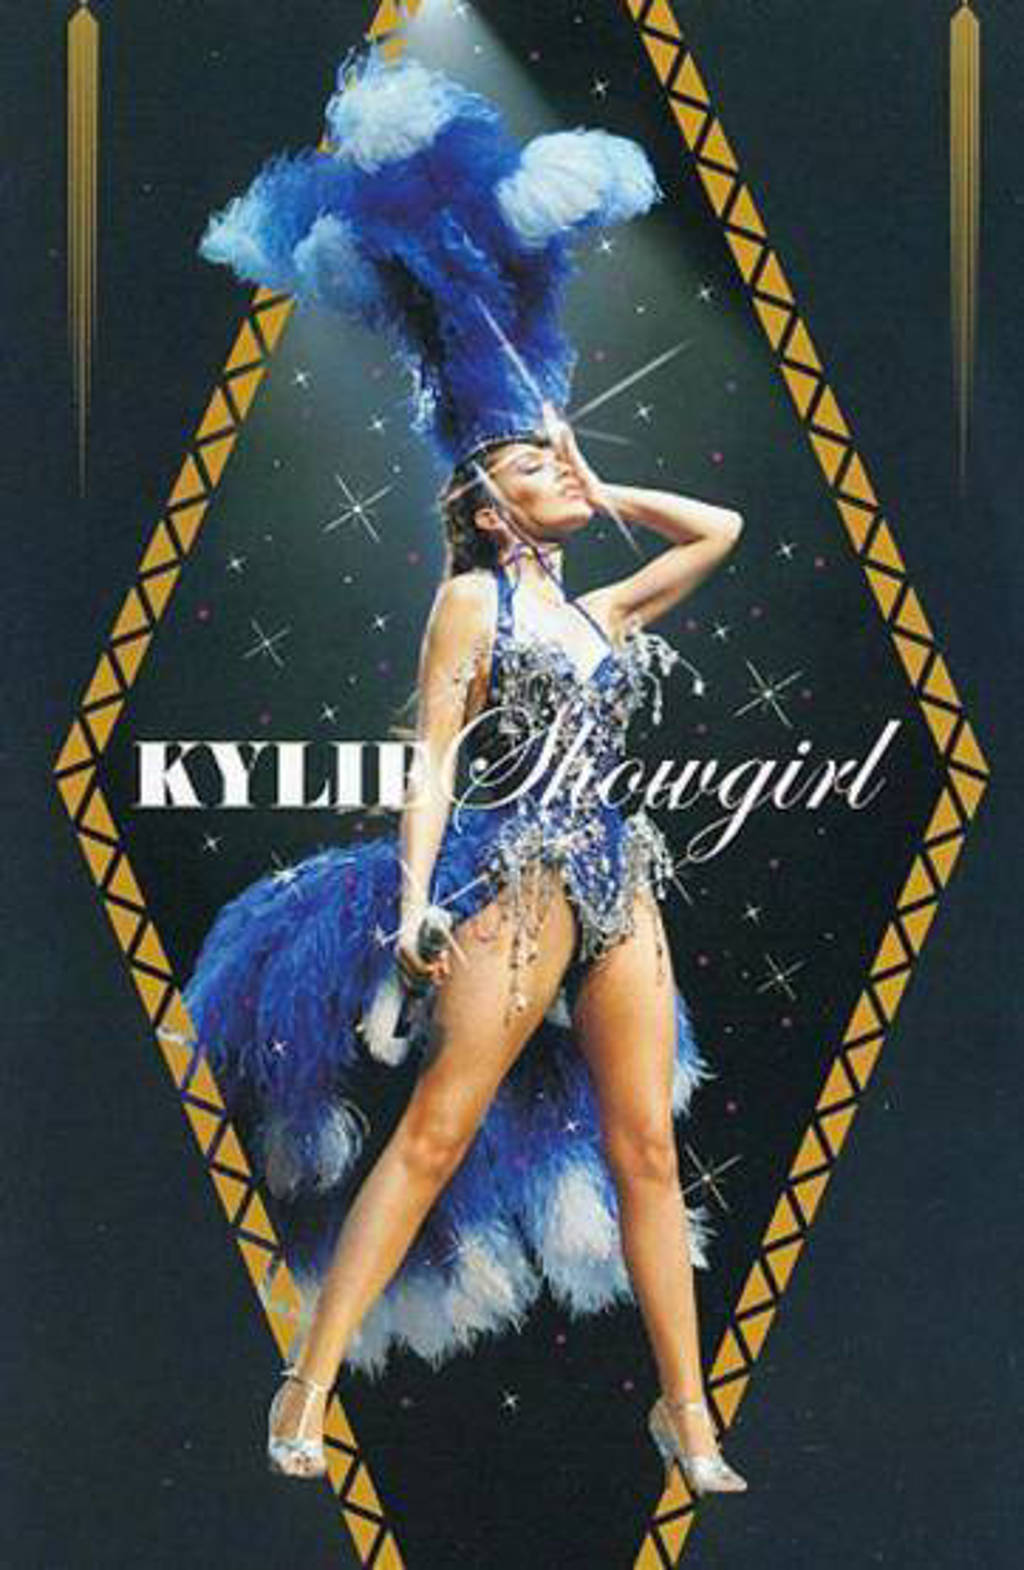 Kylie Minogue - Showgirl greatest hits tour (DVD)